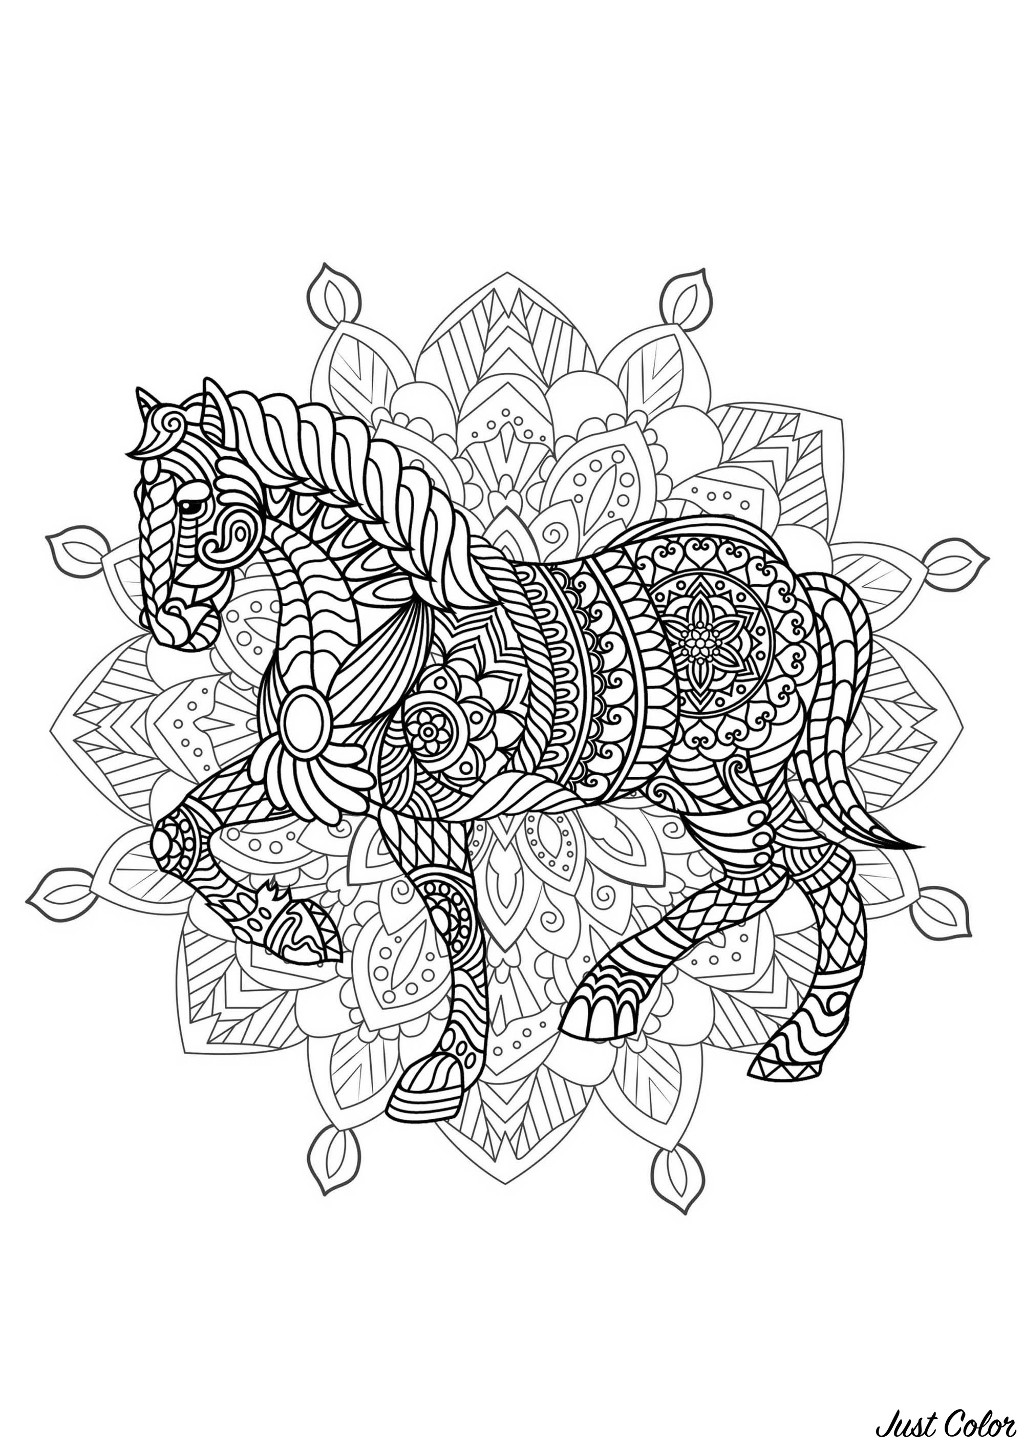 Horse integrated in a difficult Mandala. Many small details and little areas for a Mandala very original and harmonious. Do whatever it takes to get rid of any distractions that may interfere with your coloring.